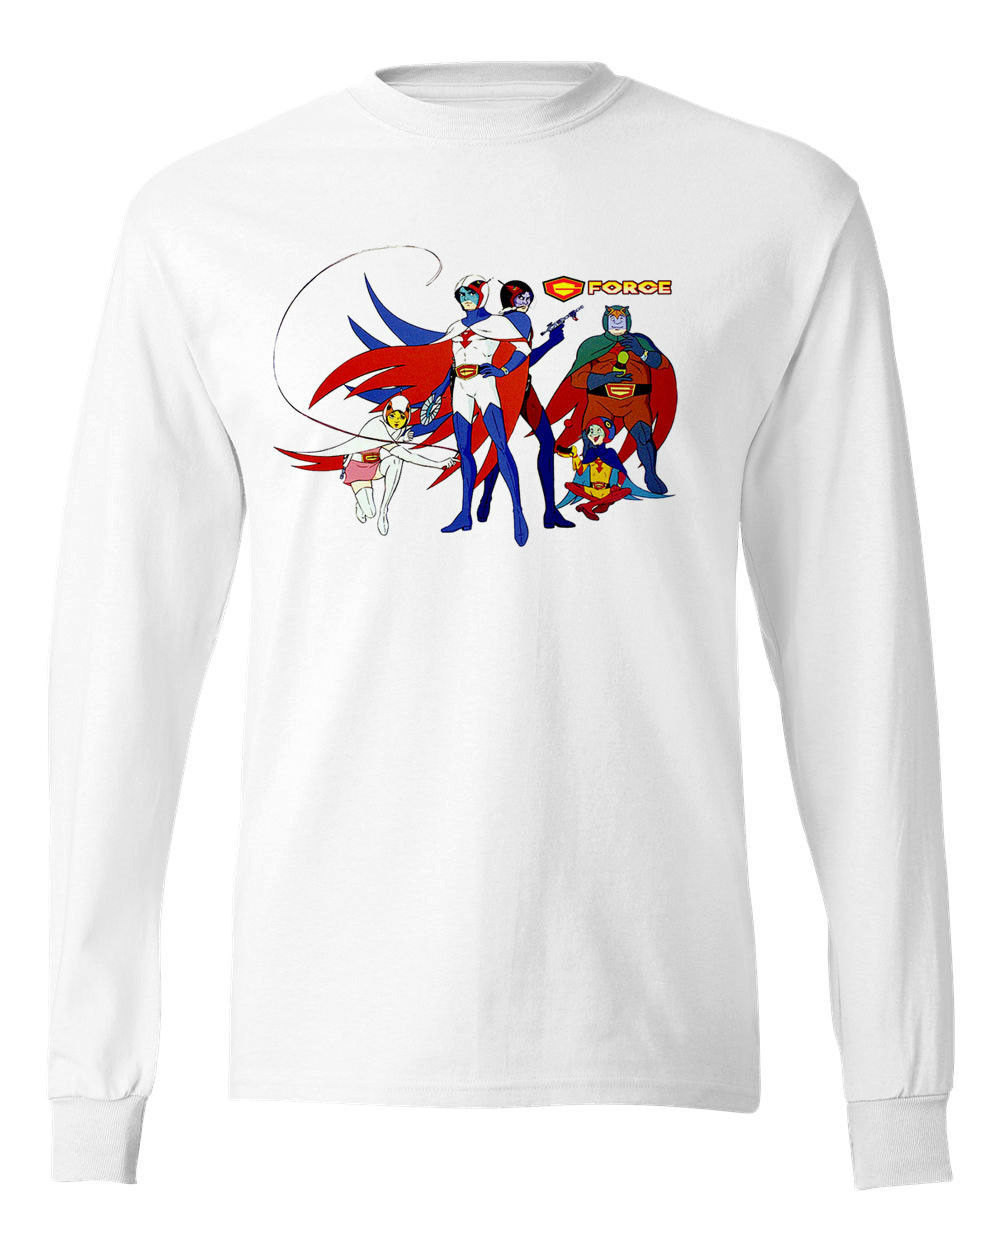 G-Force Battle of Planets T-shirt long sleeve retro cartoon 100% cotton tee